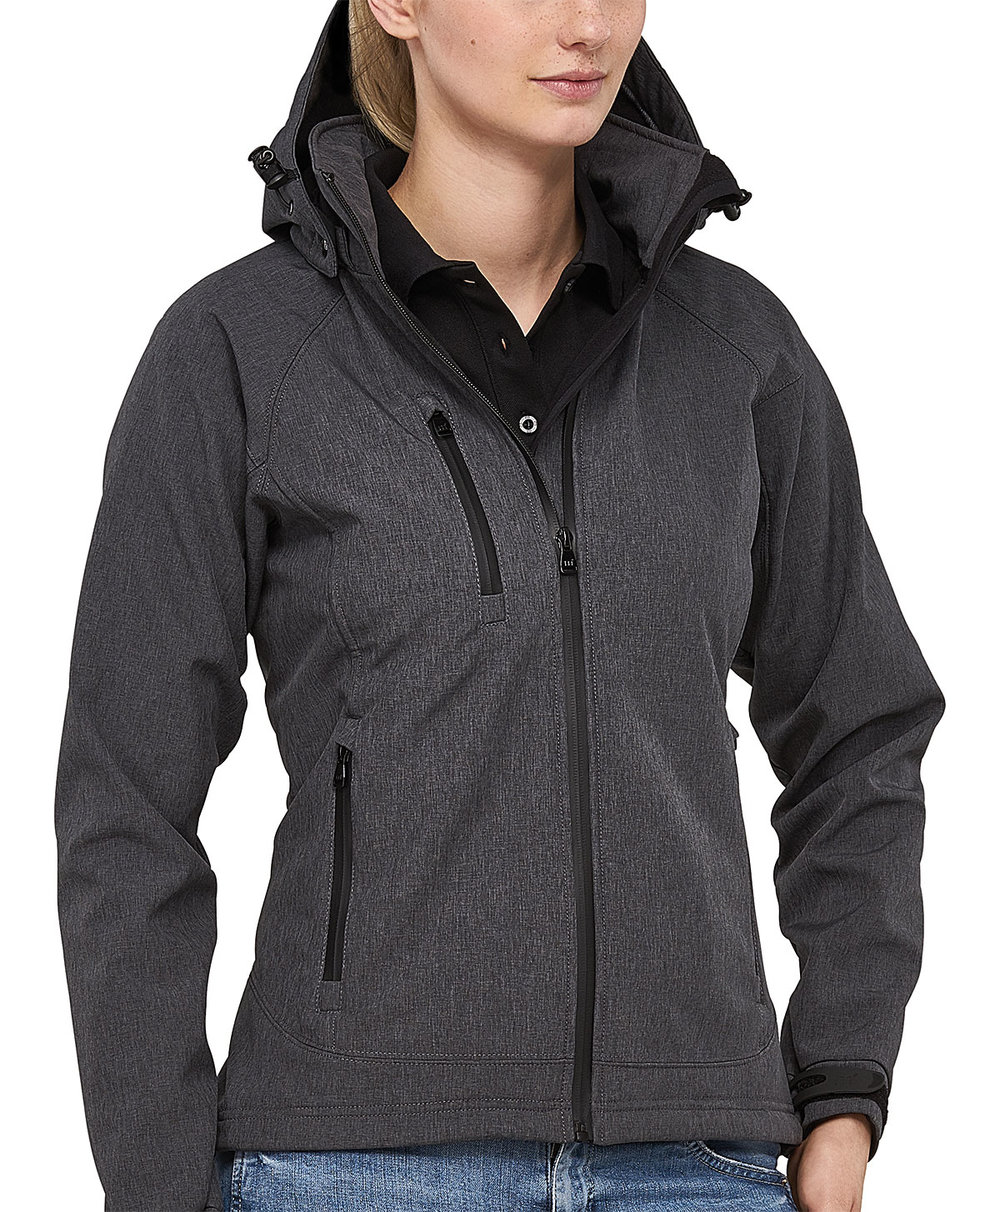 SAFARI PROTECH8000/5000 TECH SOFT SHELL JACKET FEMALE MELANGE